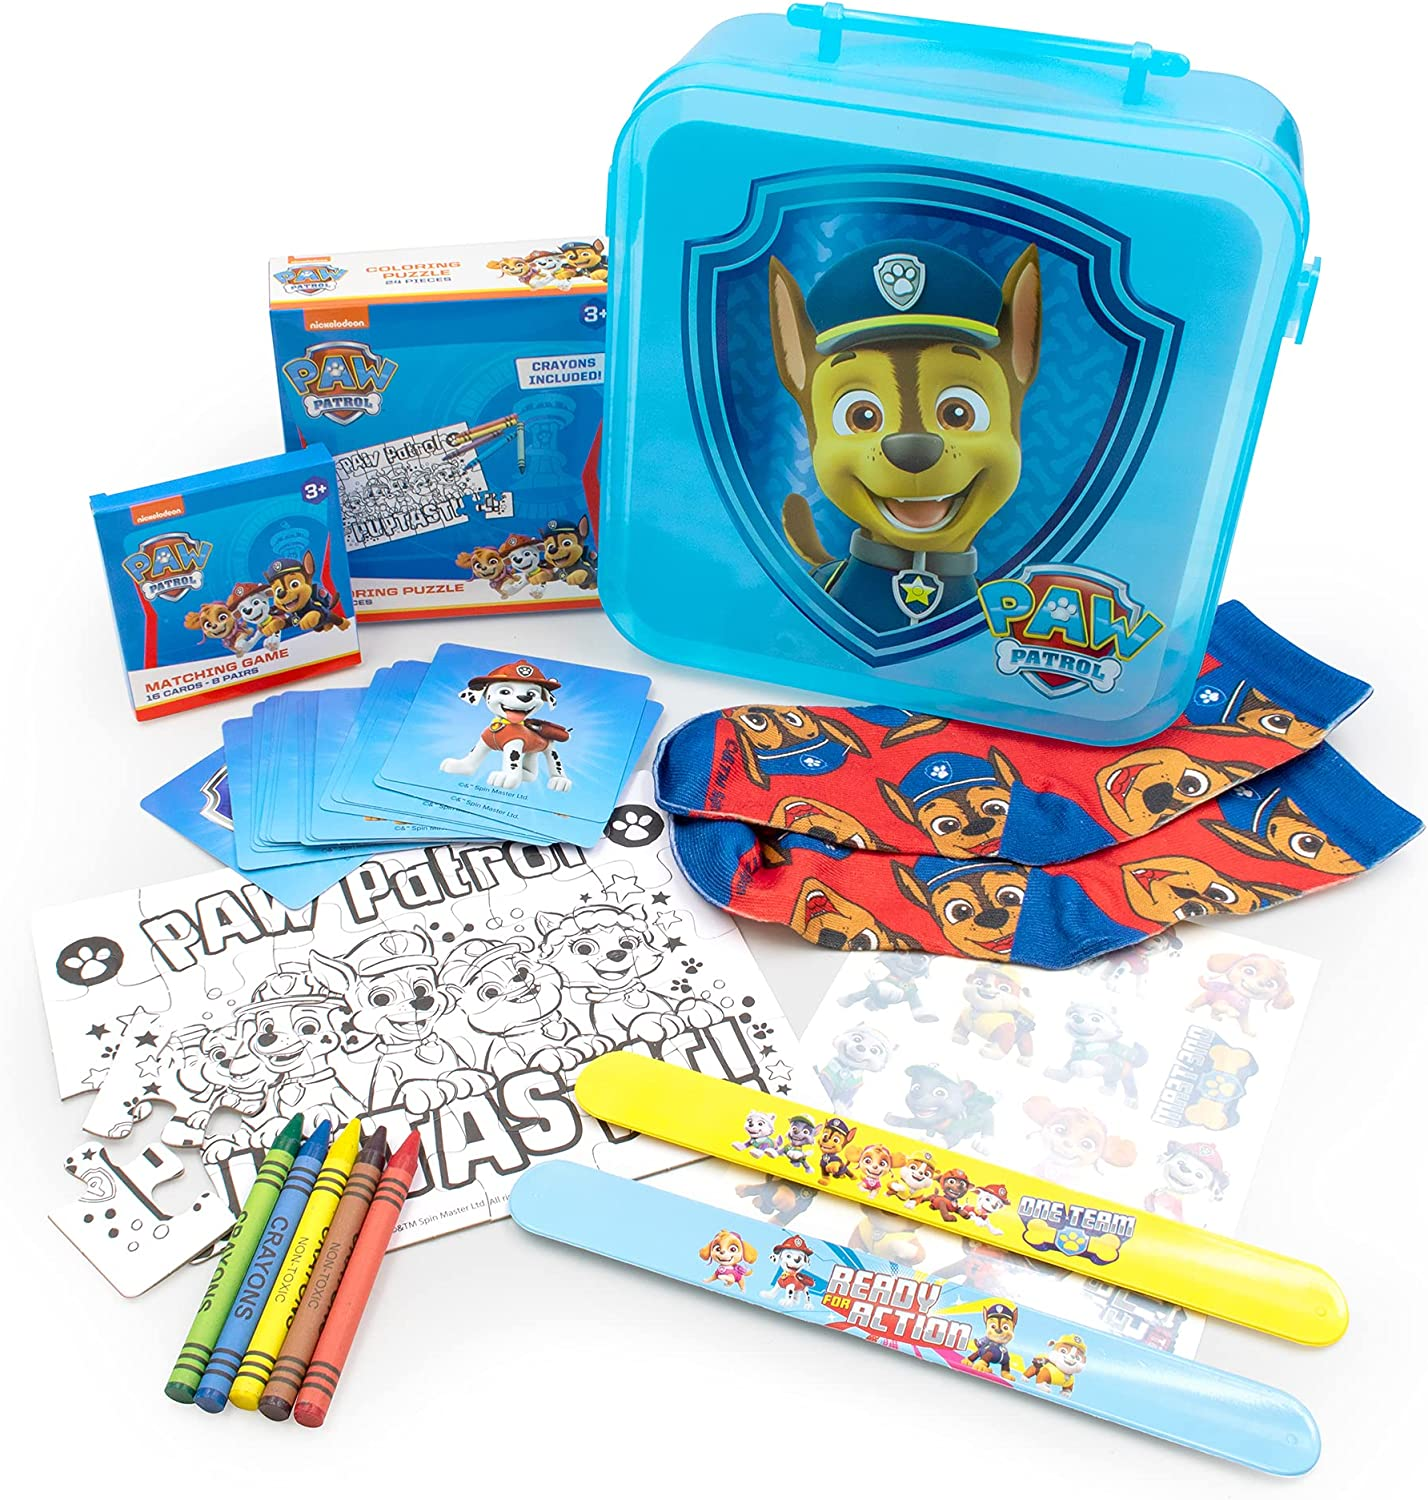 PAW safety Patrol Boys Activity Set 6pc Kids Arts and Ho New products, world's highest quality popular! Crafts for Kit